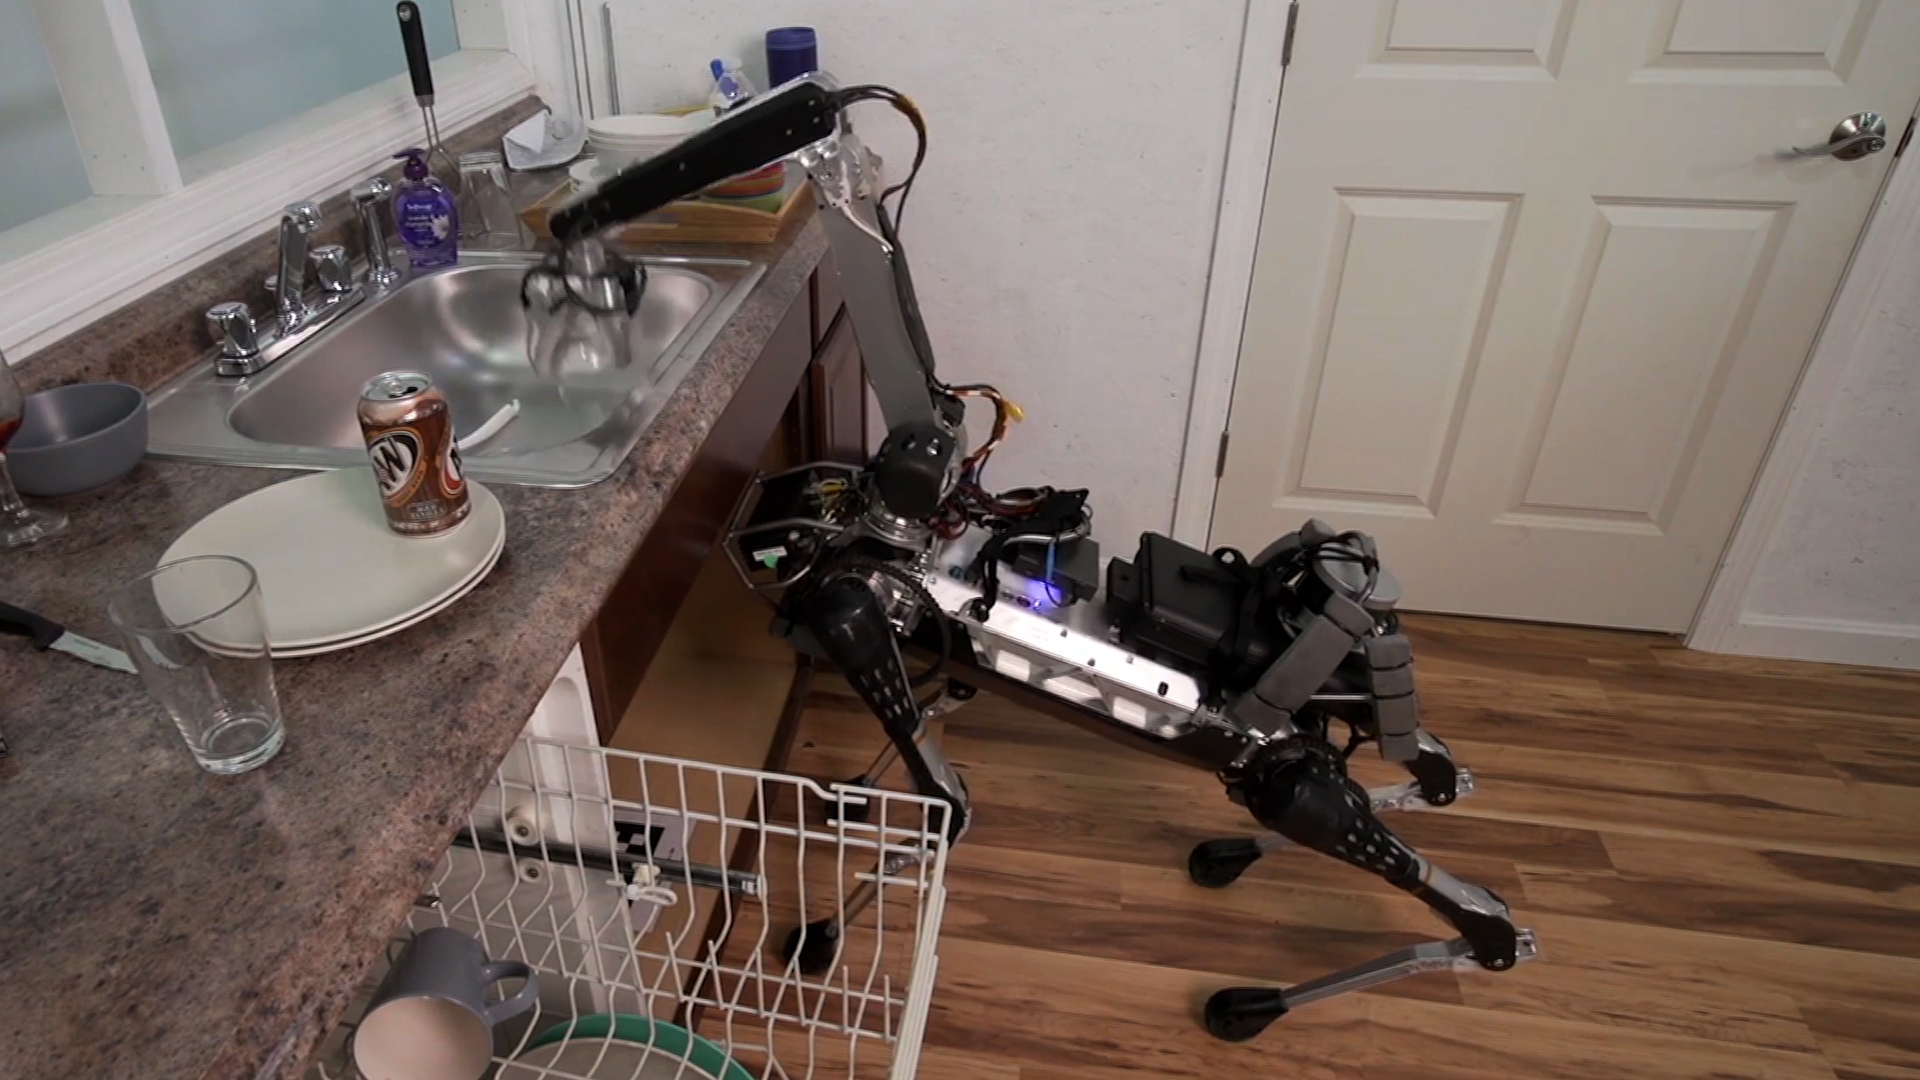 Video: Creepiest moments in Boston Dynamics' new robotic dog video